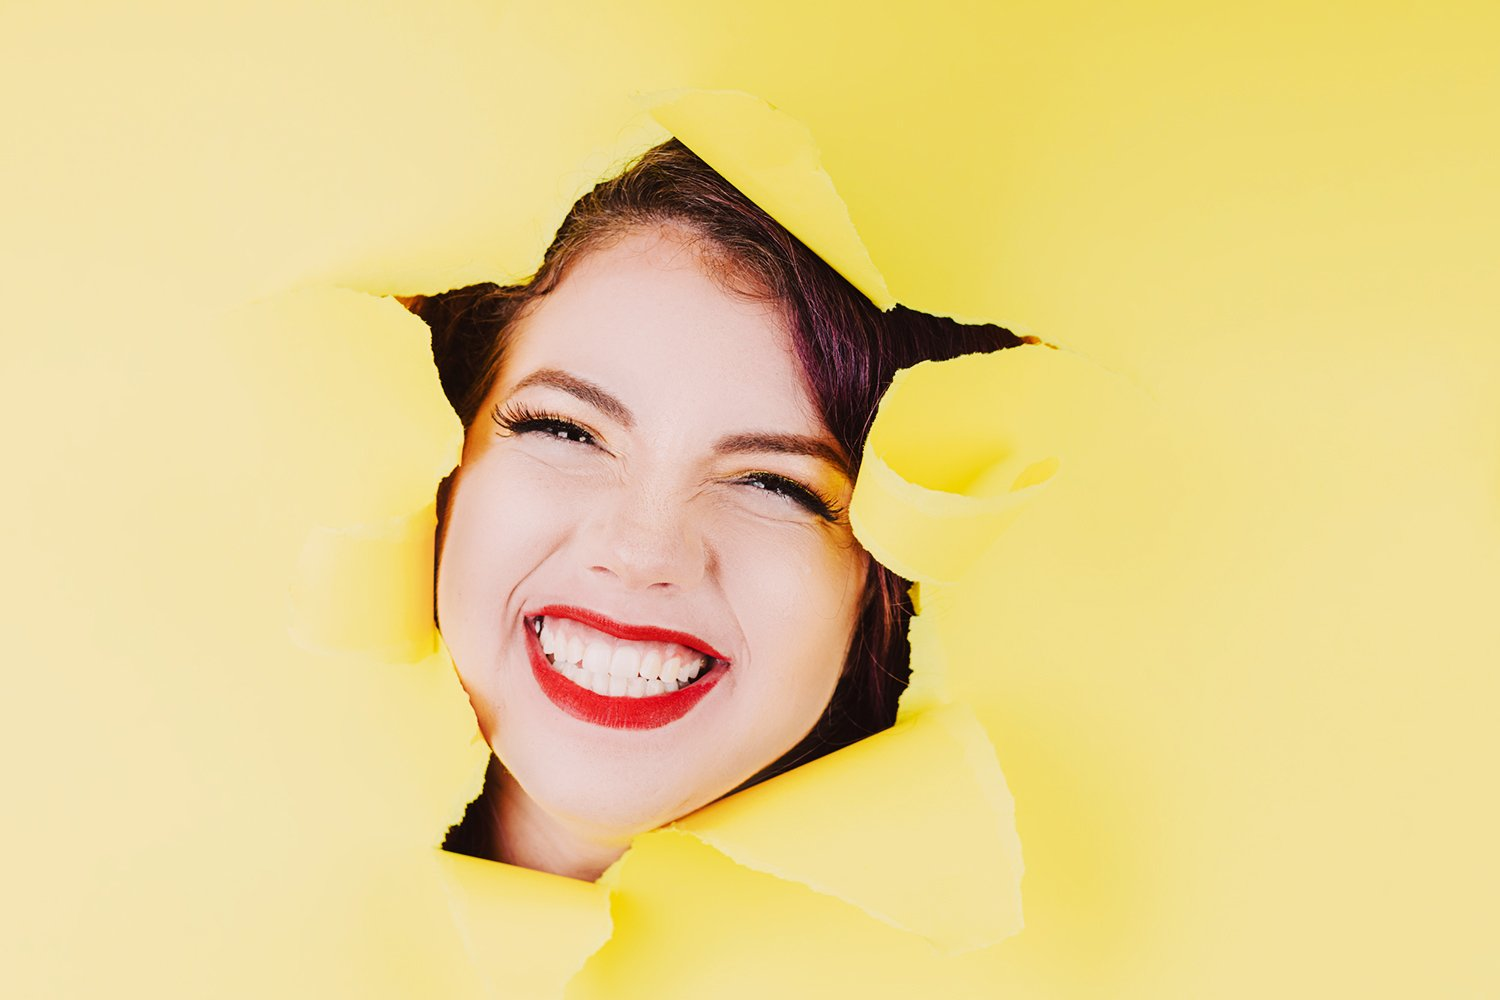 express portraits woman wearing red lipstick smiling through ripped yellow paper